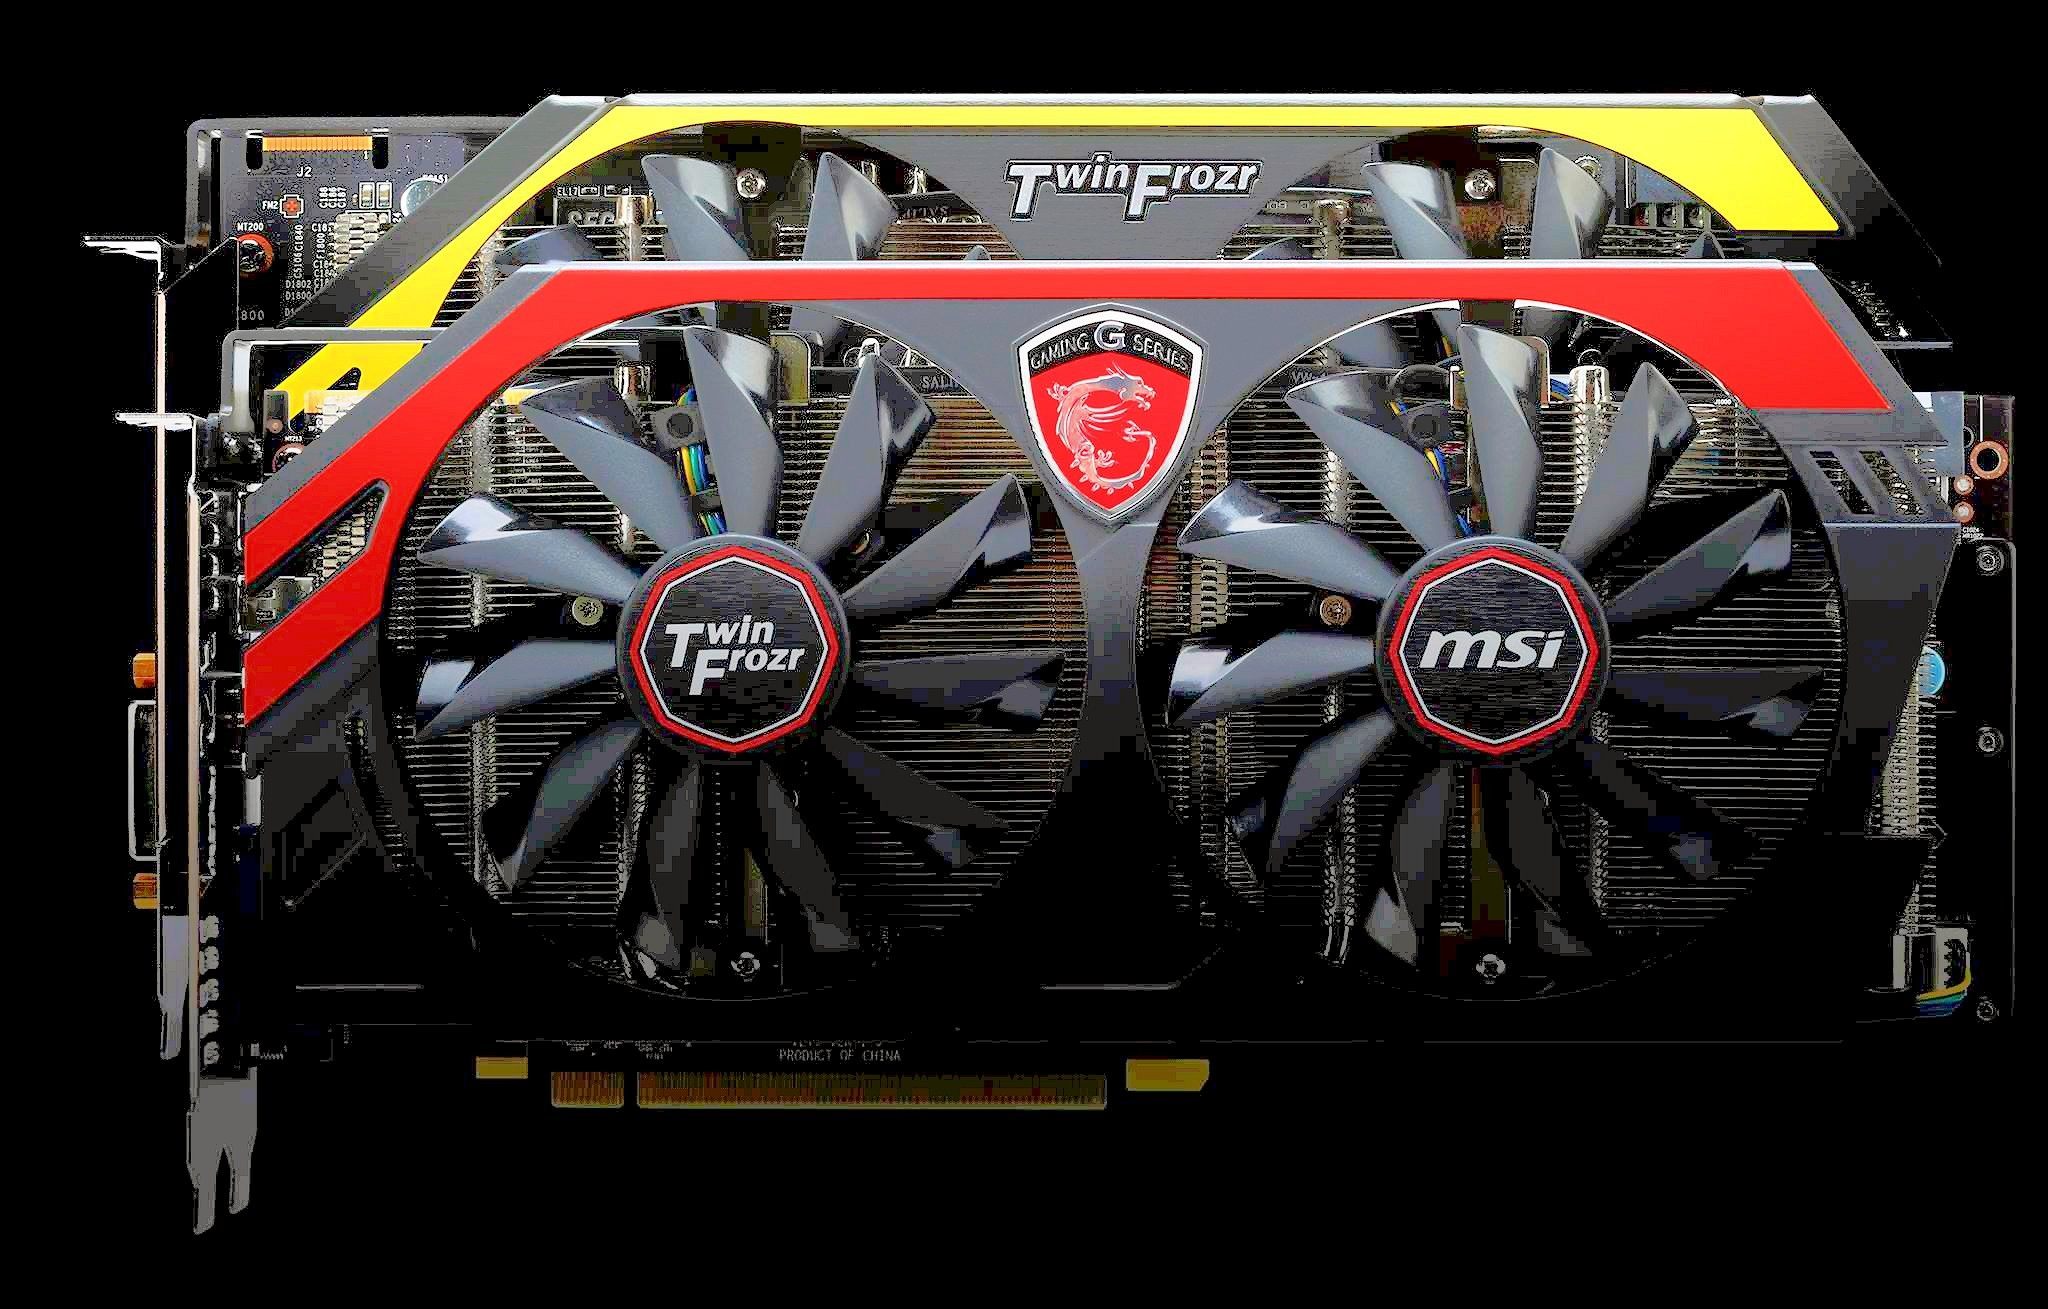 MSI Radeon R9 280X Gaming and R9 270X HAWK Graphics Cards Pictured